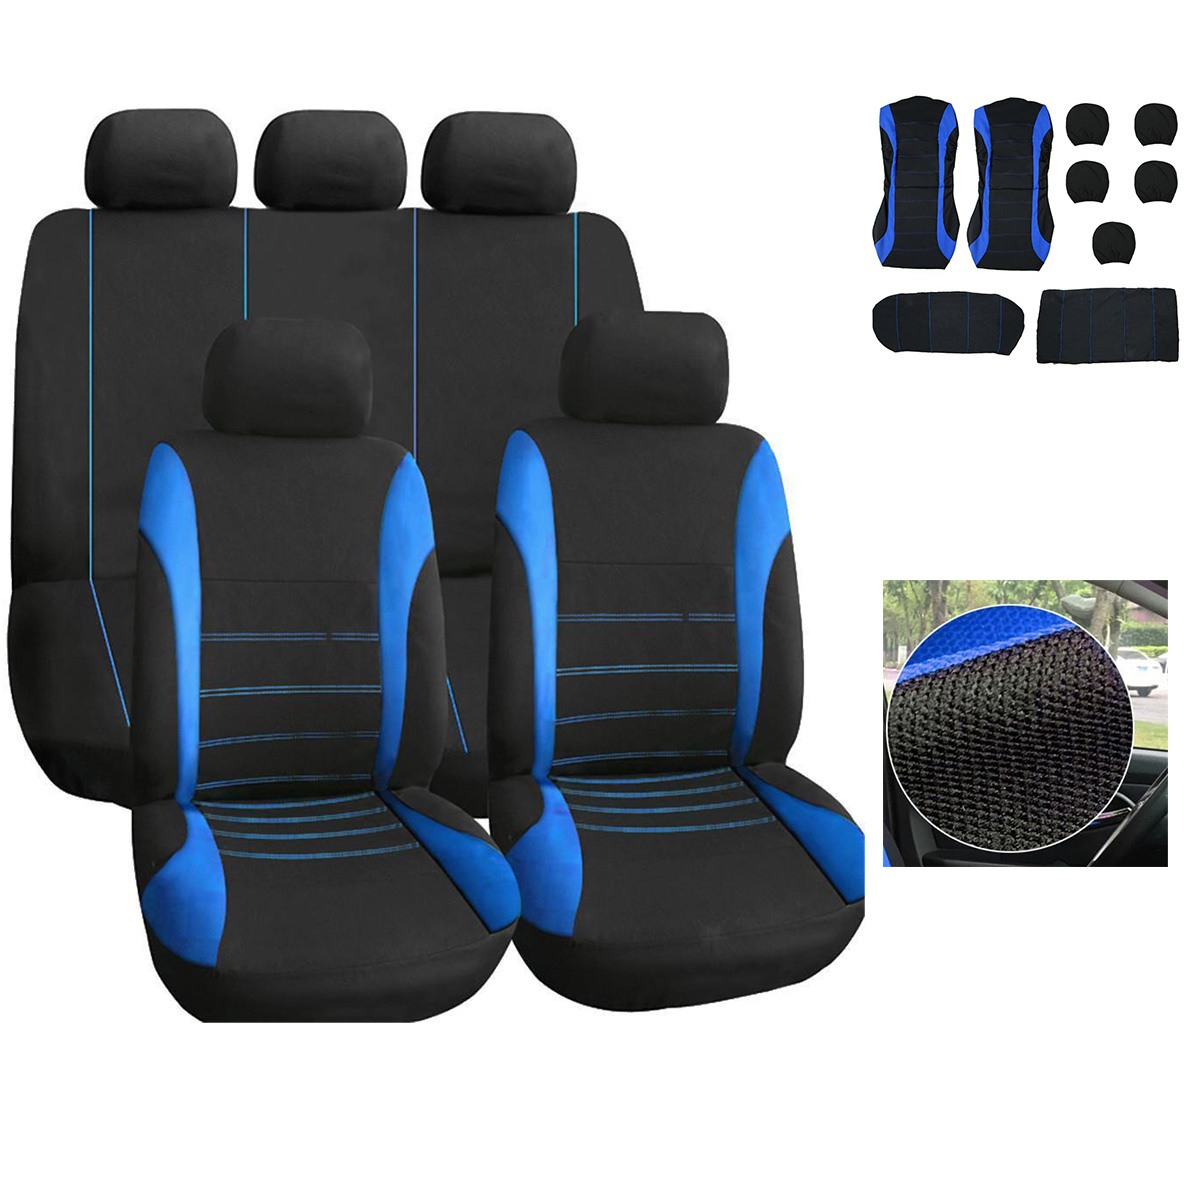 Phenomenal Details About 10 Pcs Car Seat Covers Black Blue Universal Full Set Front Rear Cushion Protect Uwap Interior Chair Design Uwaporg